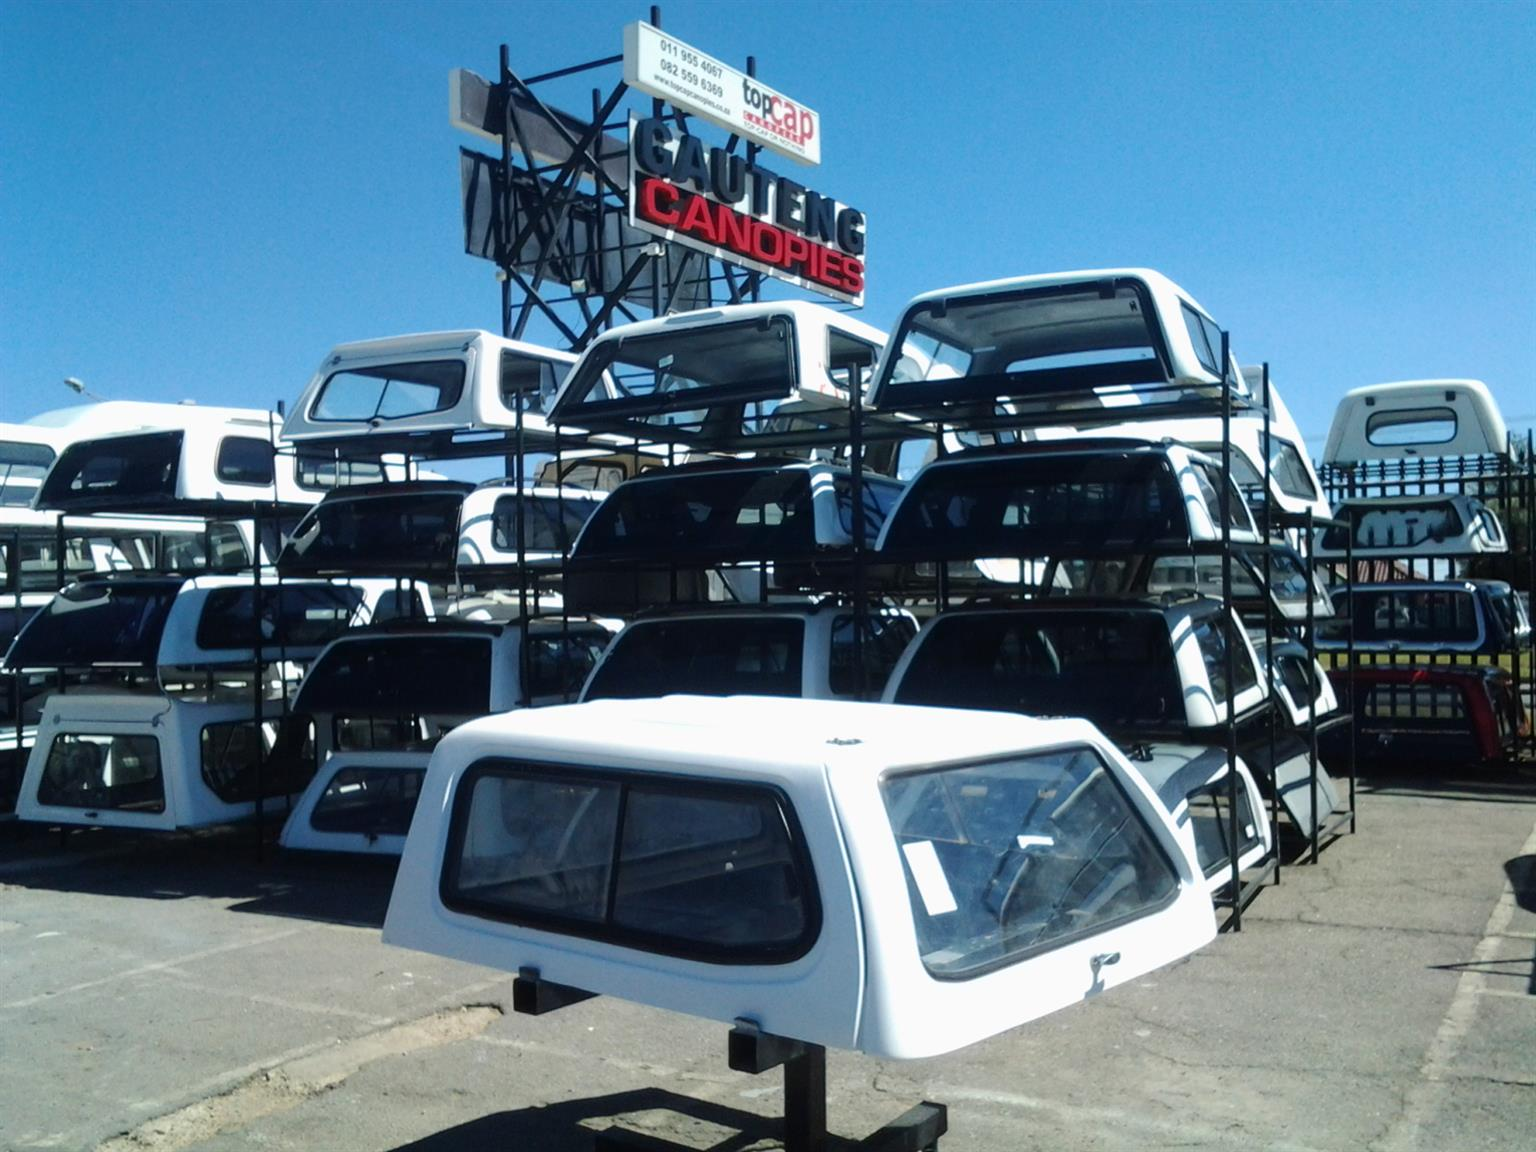 PRE OWNED CANOPY KING ISUZU FLEETSIDE 2005 TO 2013 D/C  CANOPY FOR SALE!!!!!!!